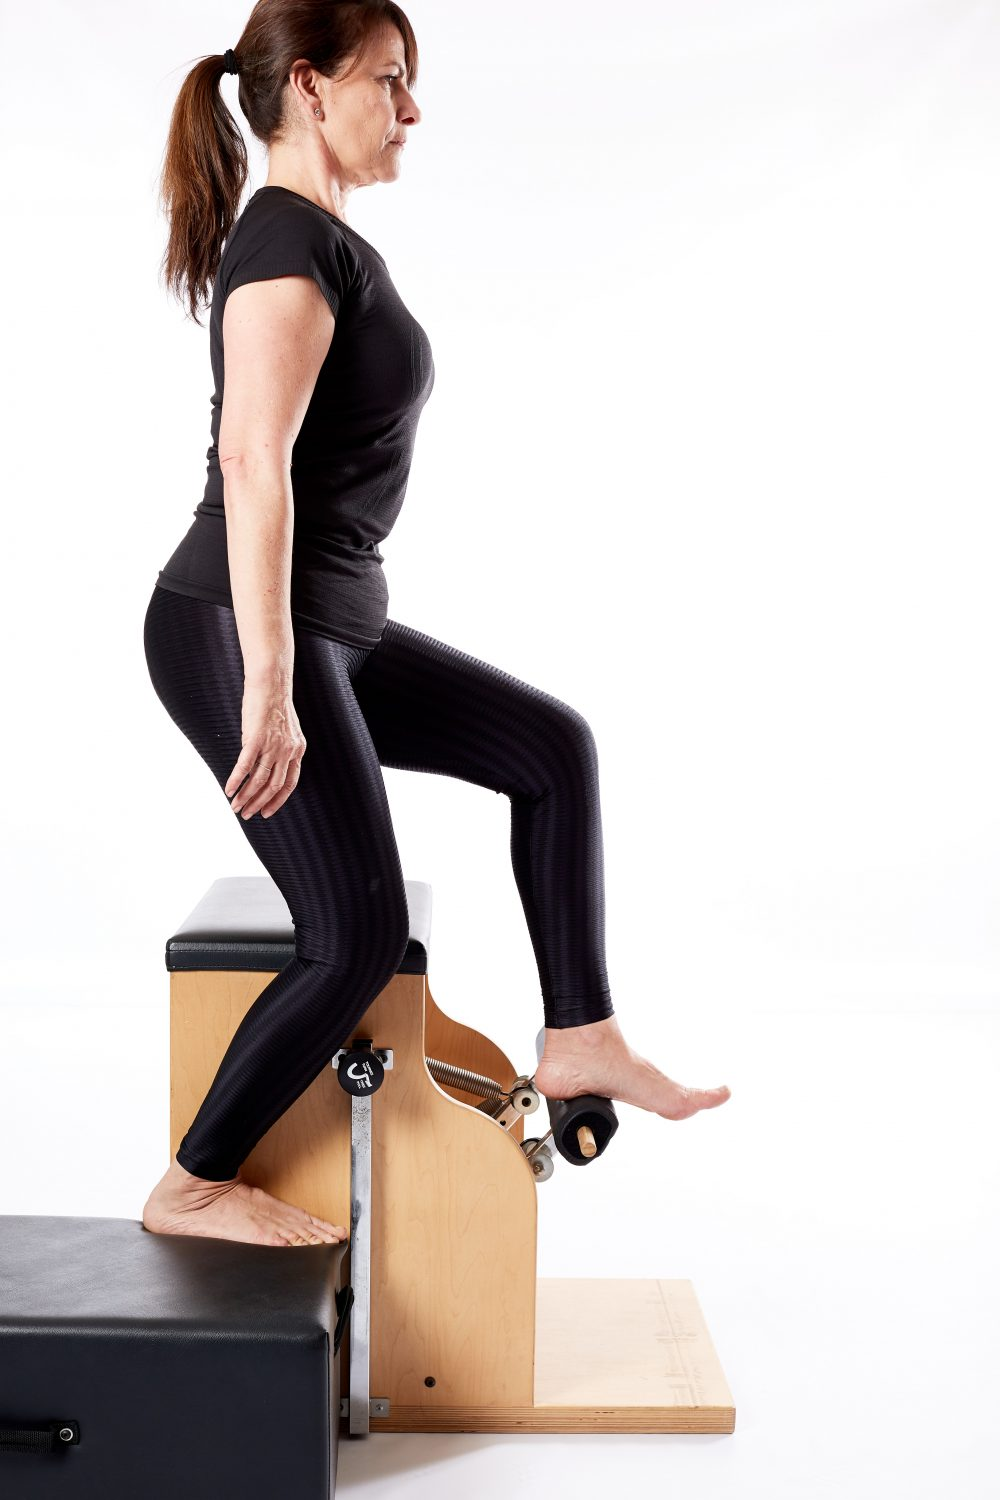 Wunda Chair step upo with Makarlu for knee replacement exercises